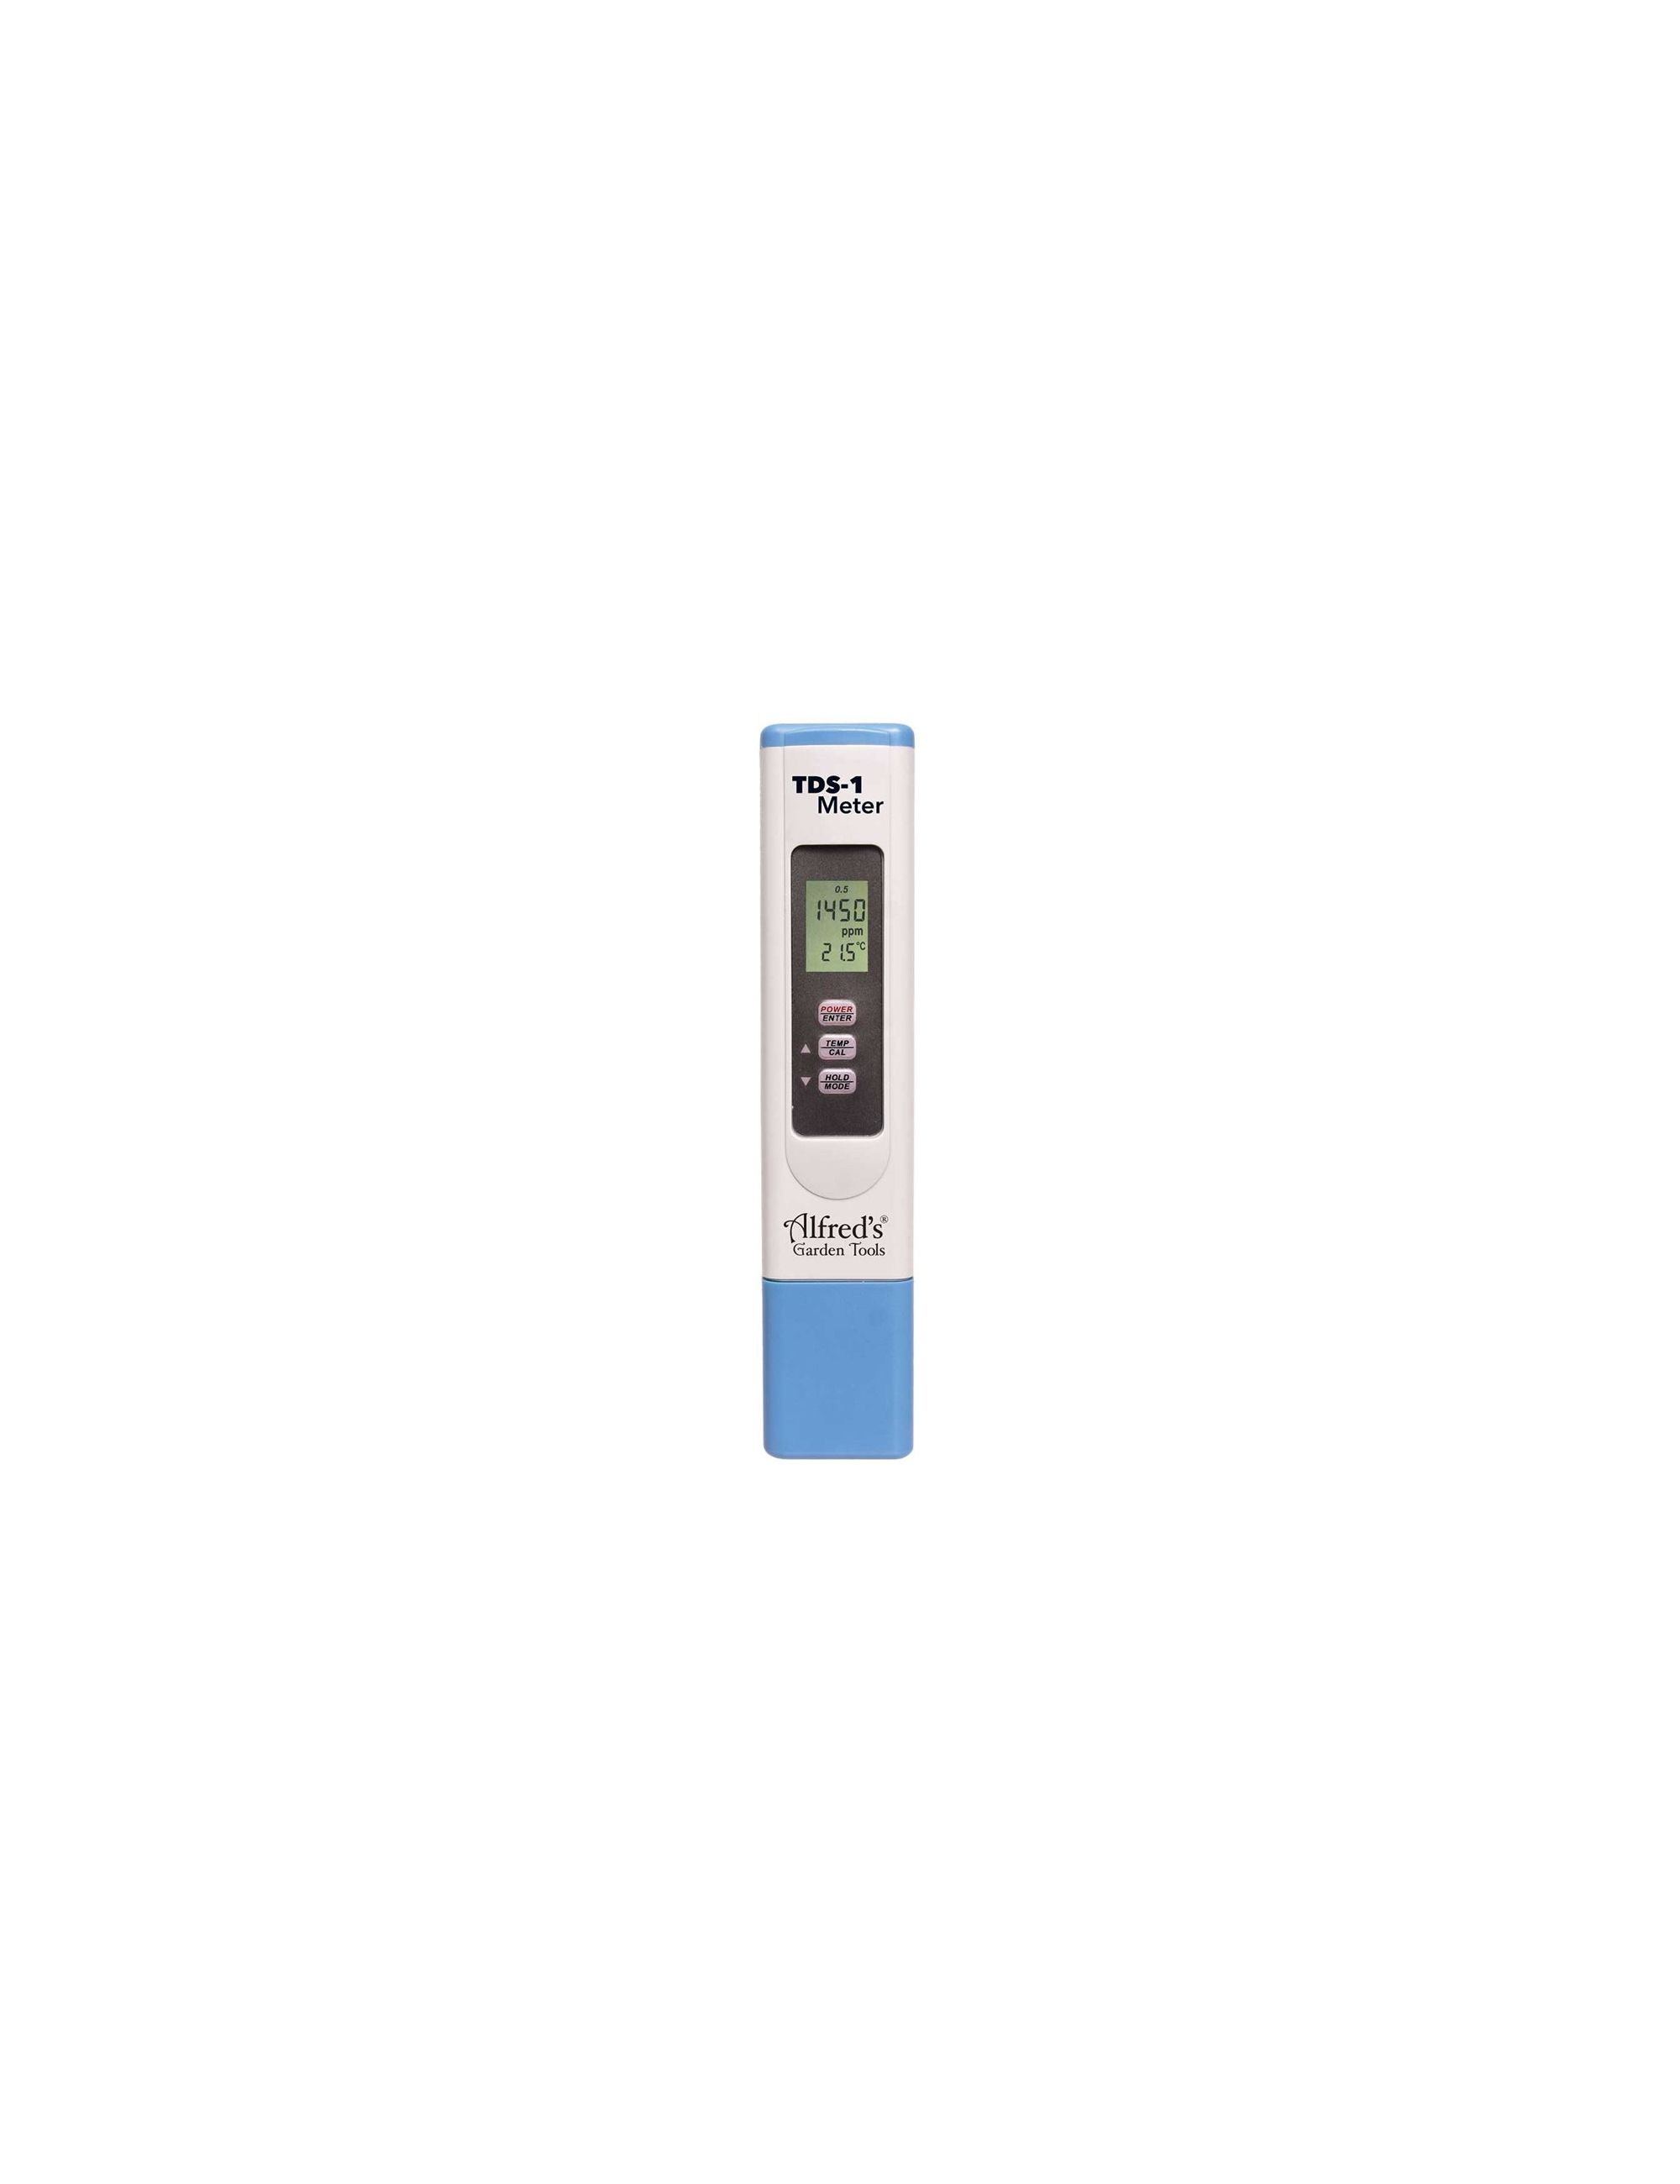 ALFRED DIGITAL EC / TDS / TEMPERATURE HYDRO TESTER